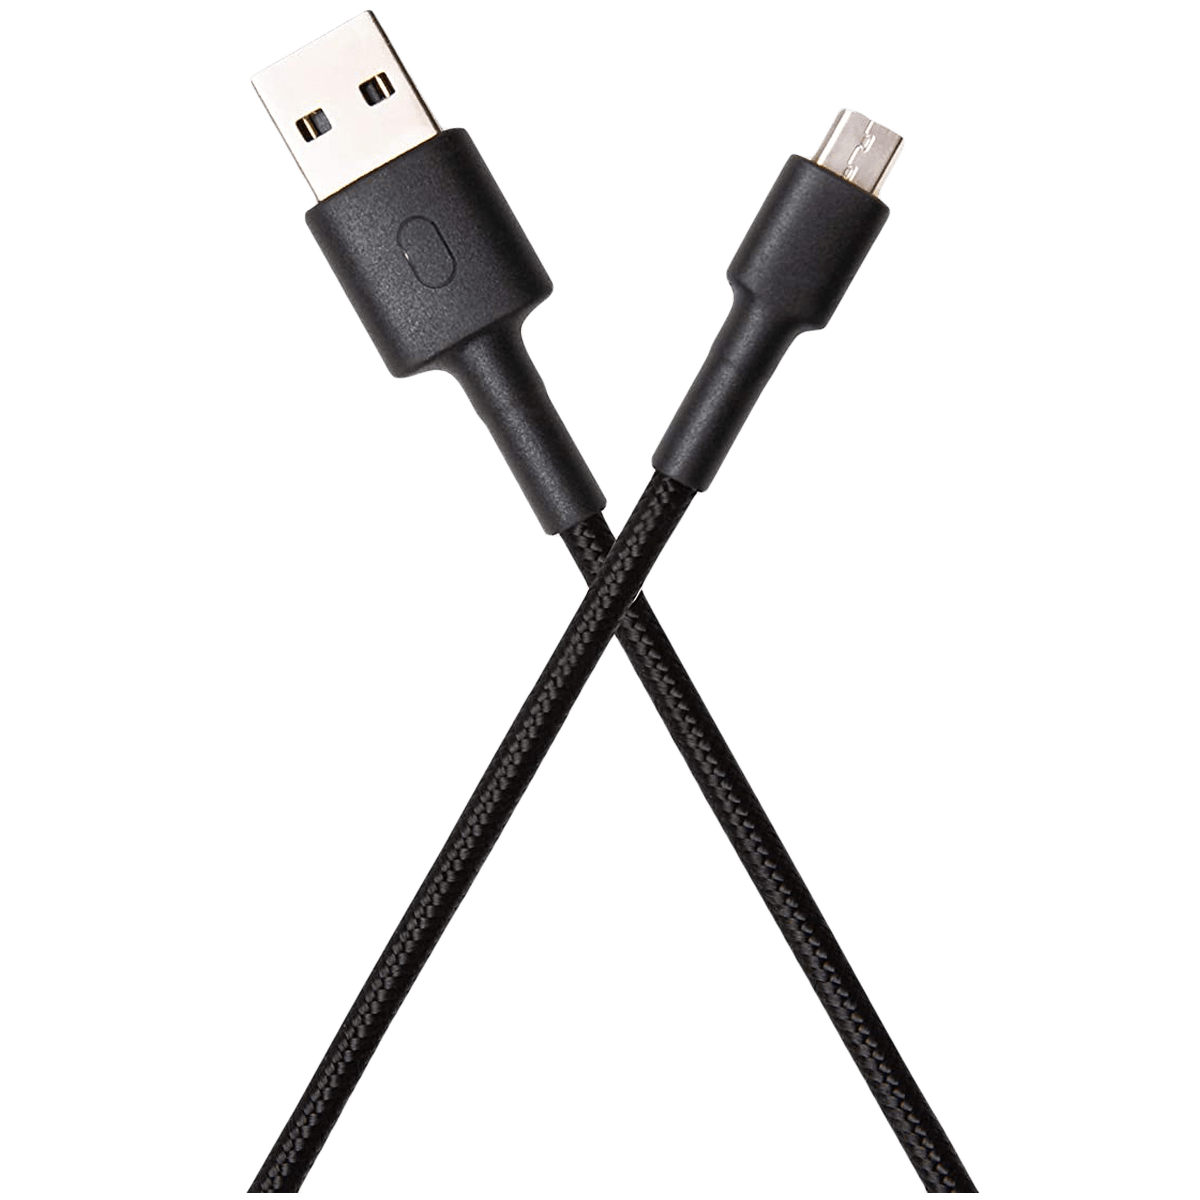 Xiaomi Mi Braided Aramid Fiber 1 Meter USB 2.0 (Type-A) to Micro USB 2.0 (Type-B) Power/Charging USB Cable (Fast Charging Compatible, SJV4128IN, Black)